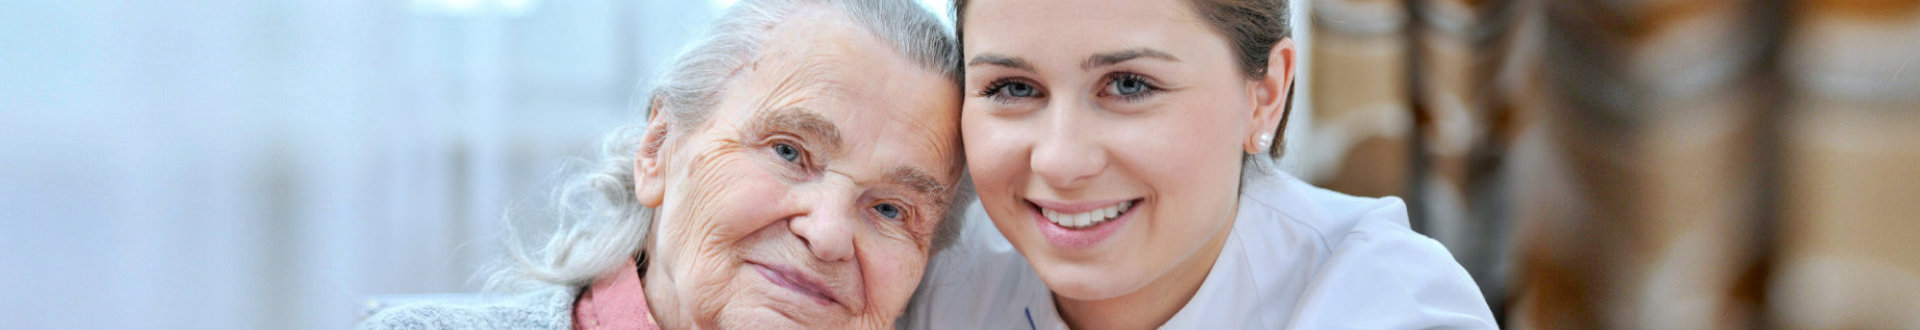 senior woman and caregiver are smiling